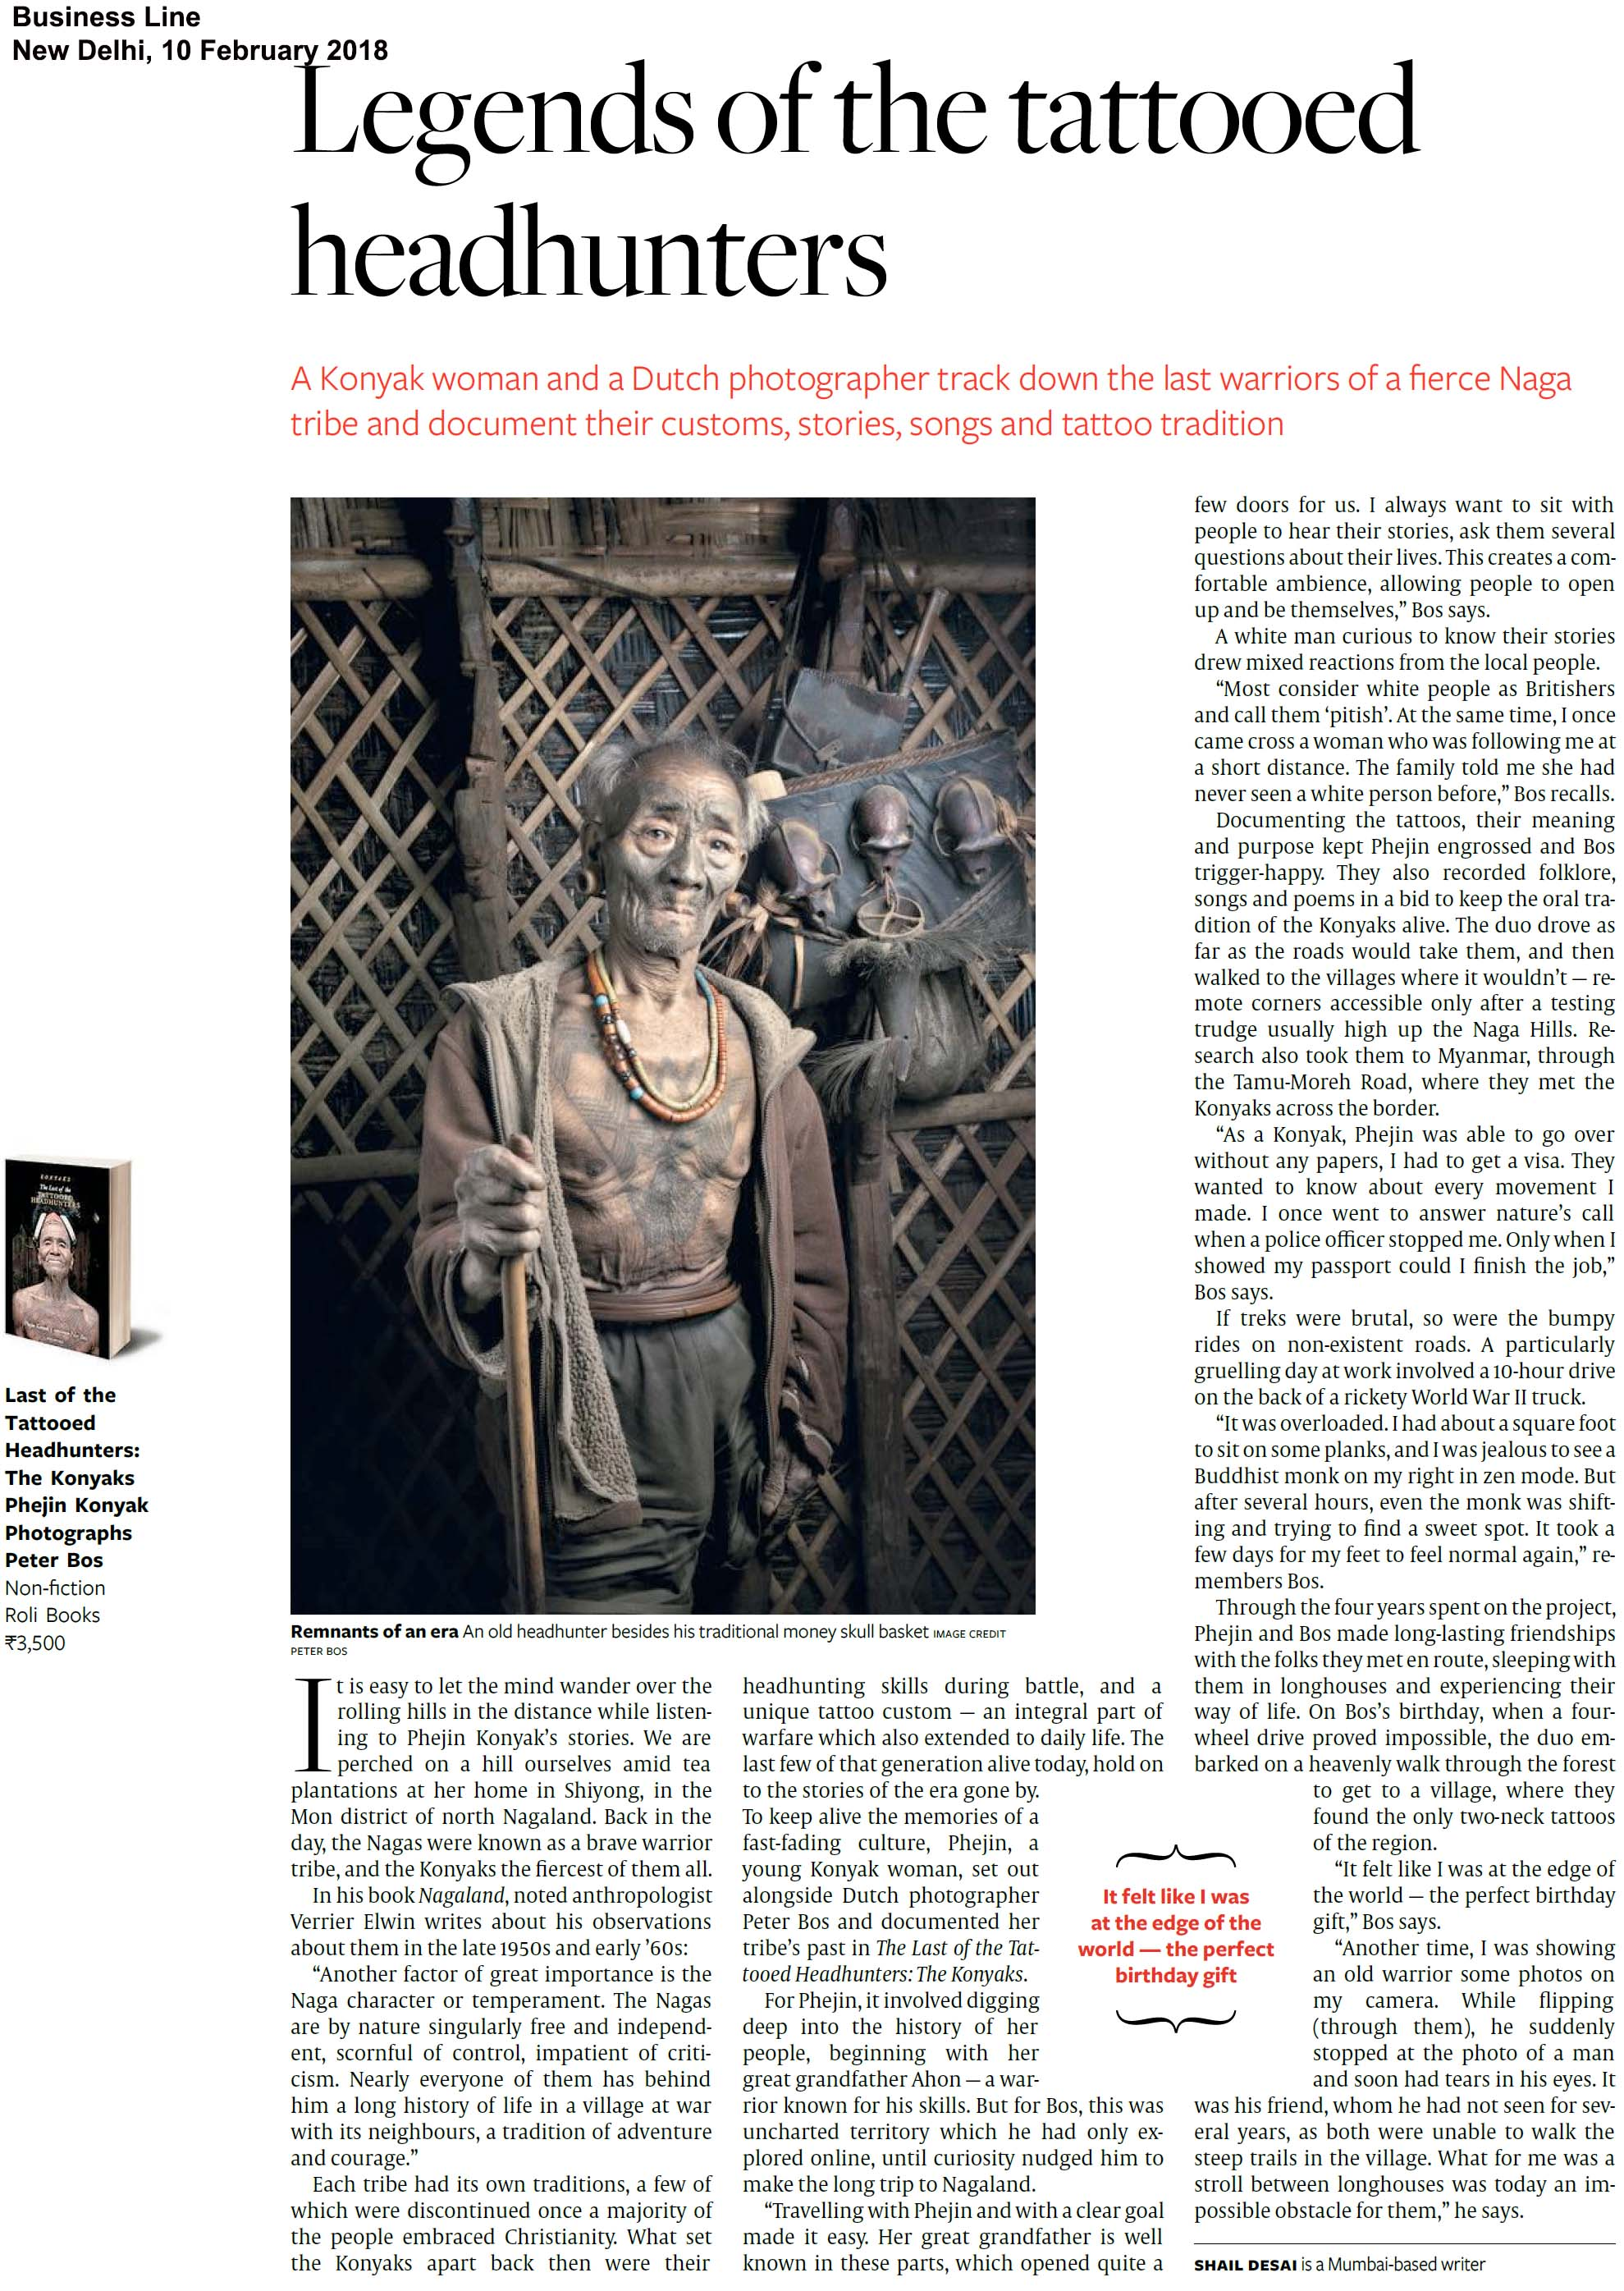 The Konyaks: The Last of the Tattooed Headhunters<br><span>Business Line, New Delhi</span>